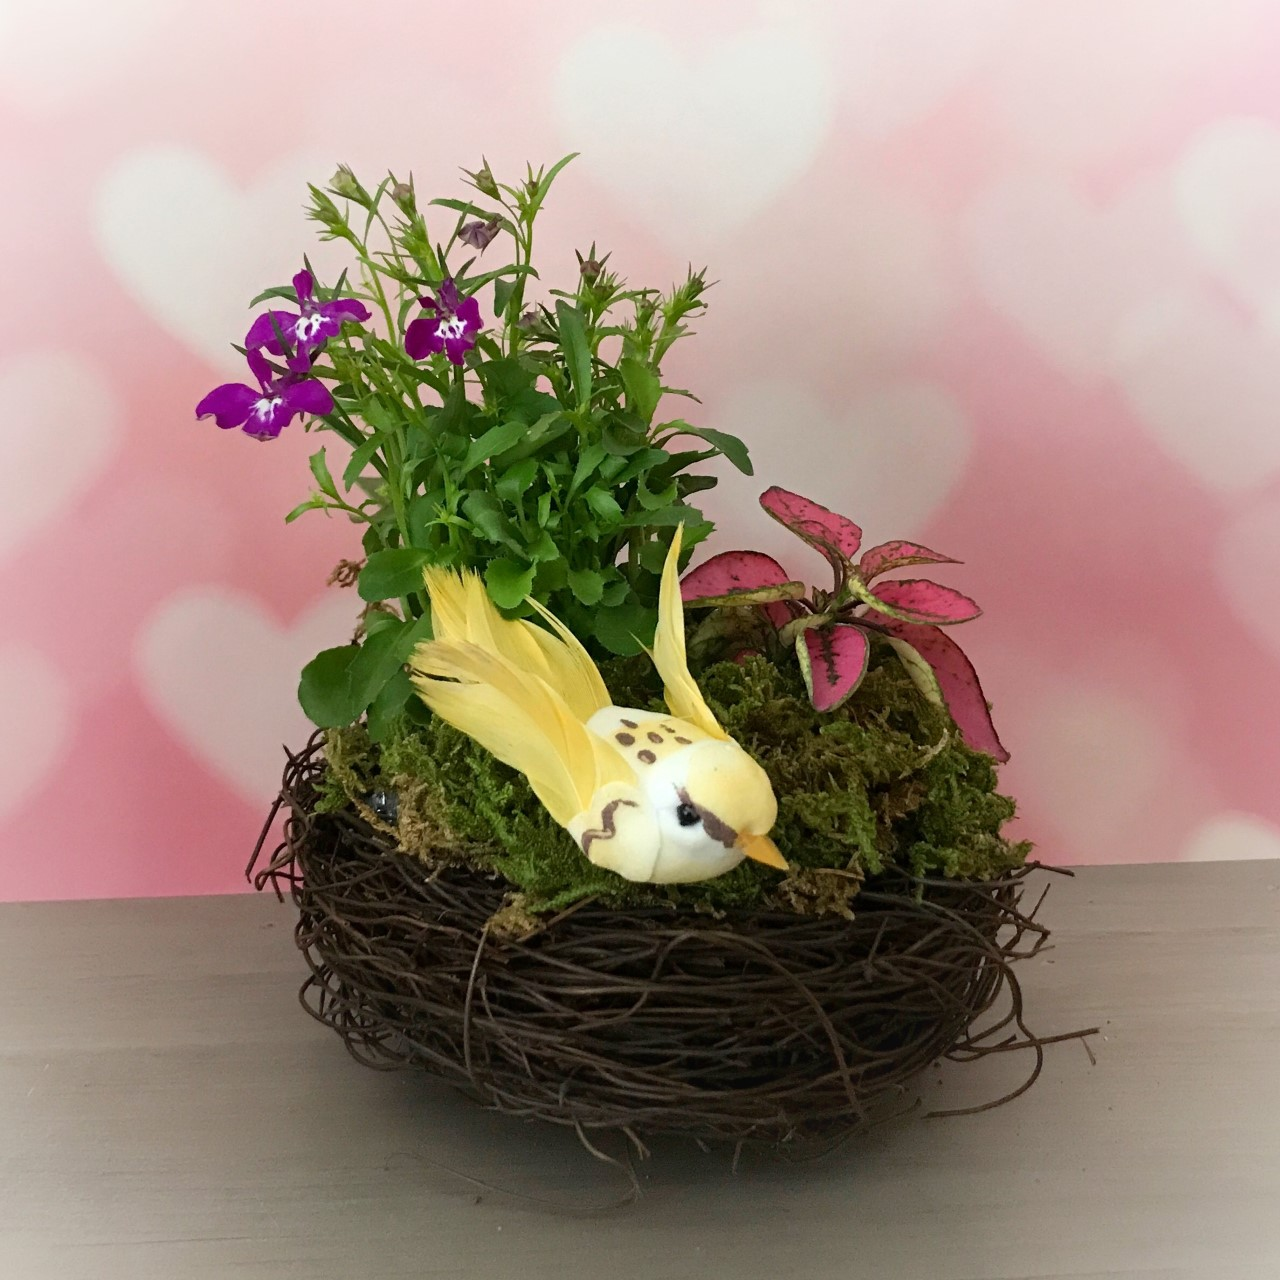 Make as Spring Bird's Nest for Mother's Day